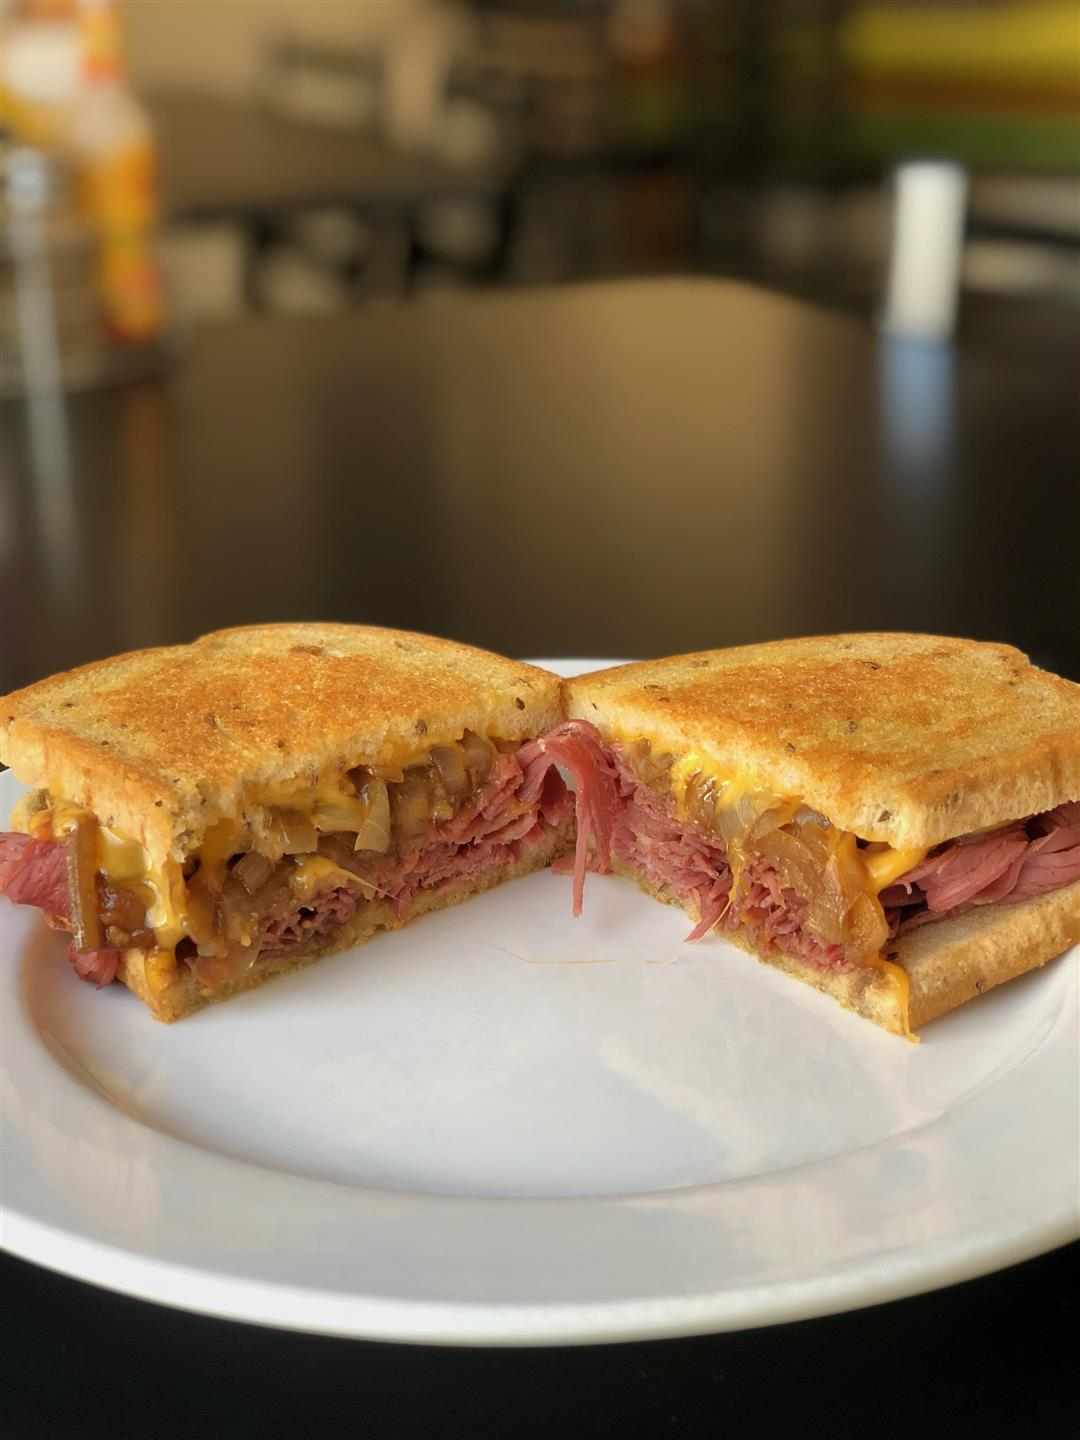 reuben sandwich cut in half